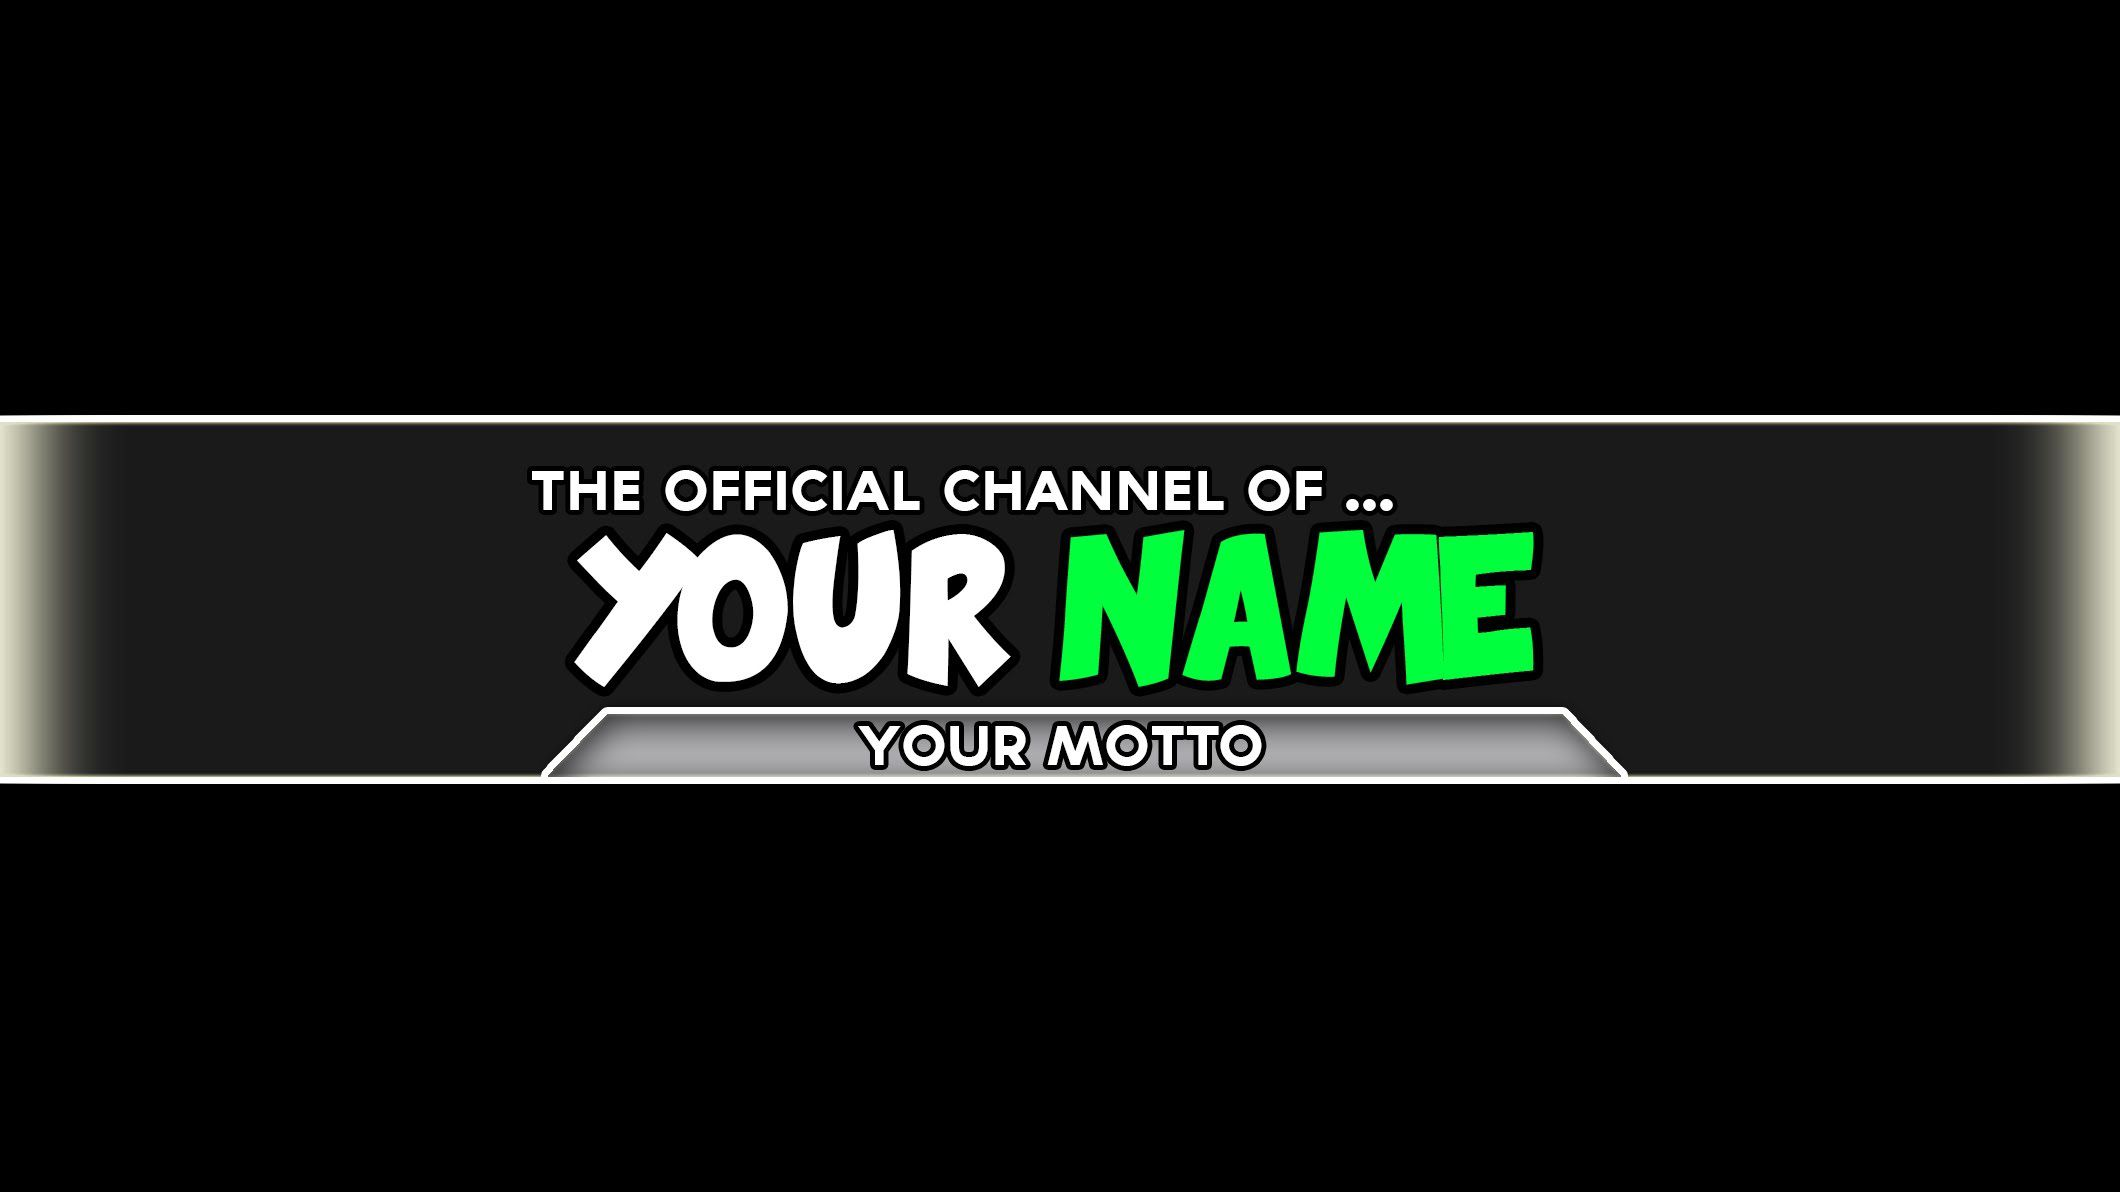 005 Incredible Channel Art Template Photoshop High Definition  Roblox Youtube CcFull